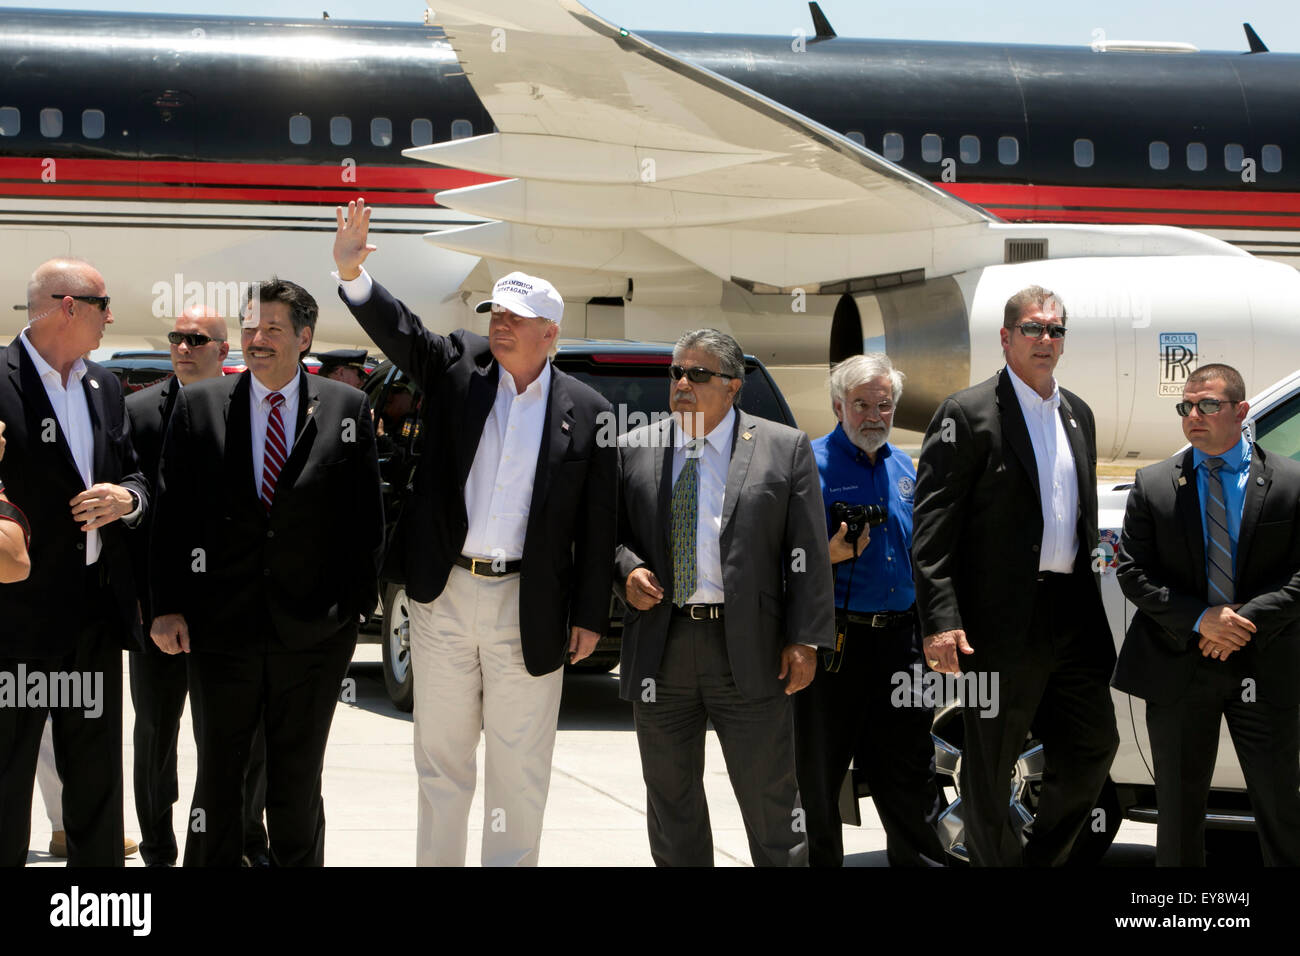 US Presidential candidate Donald Trump waves to supporters with group of local Laredo, Texas dignitaries after landing - Stock Image